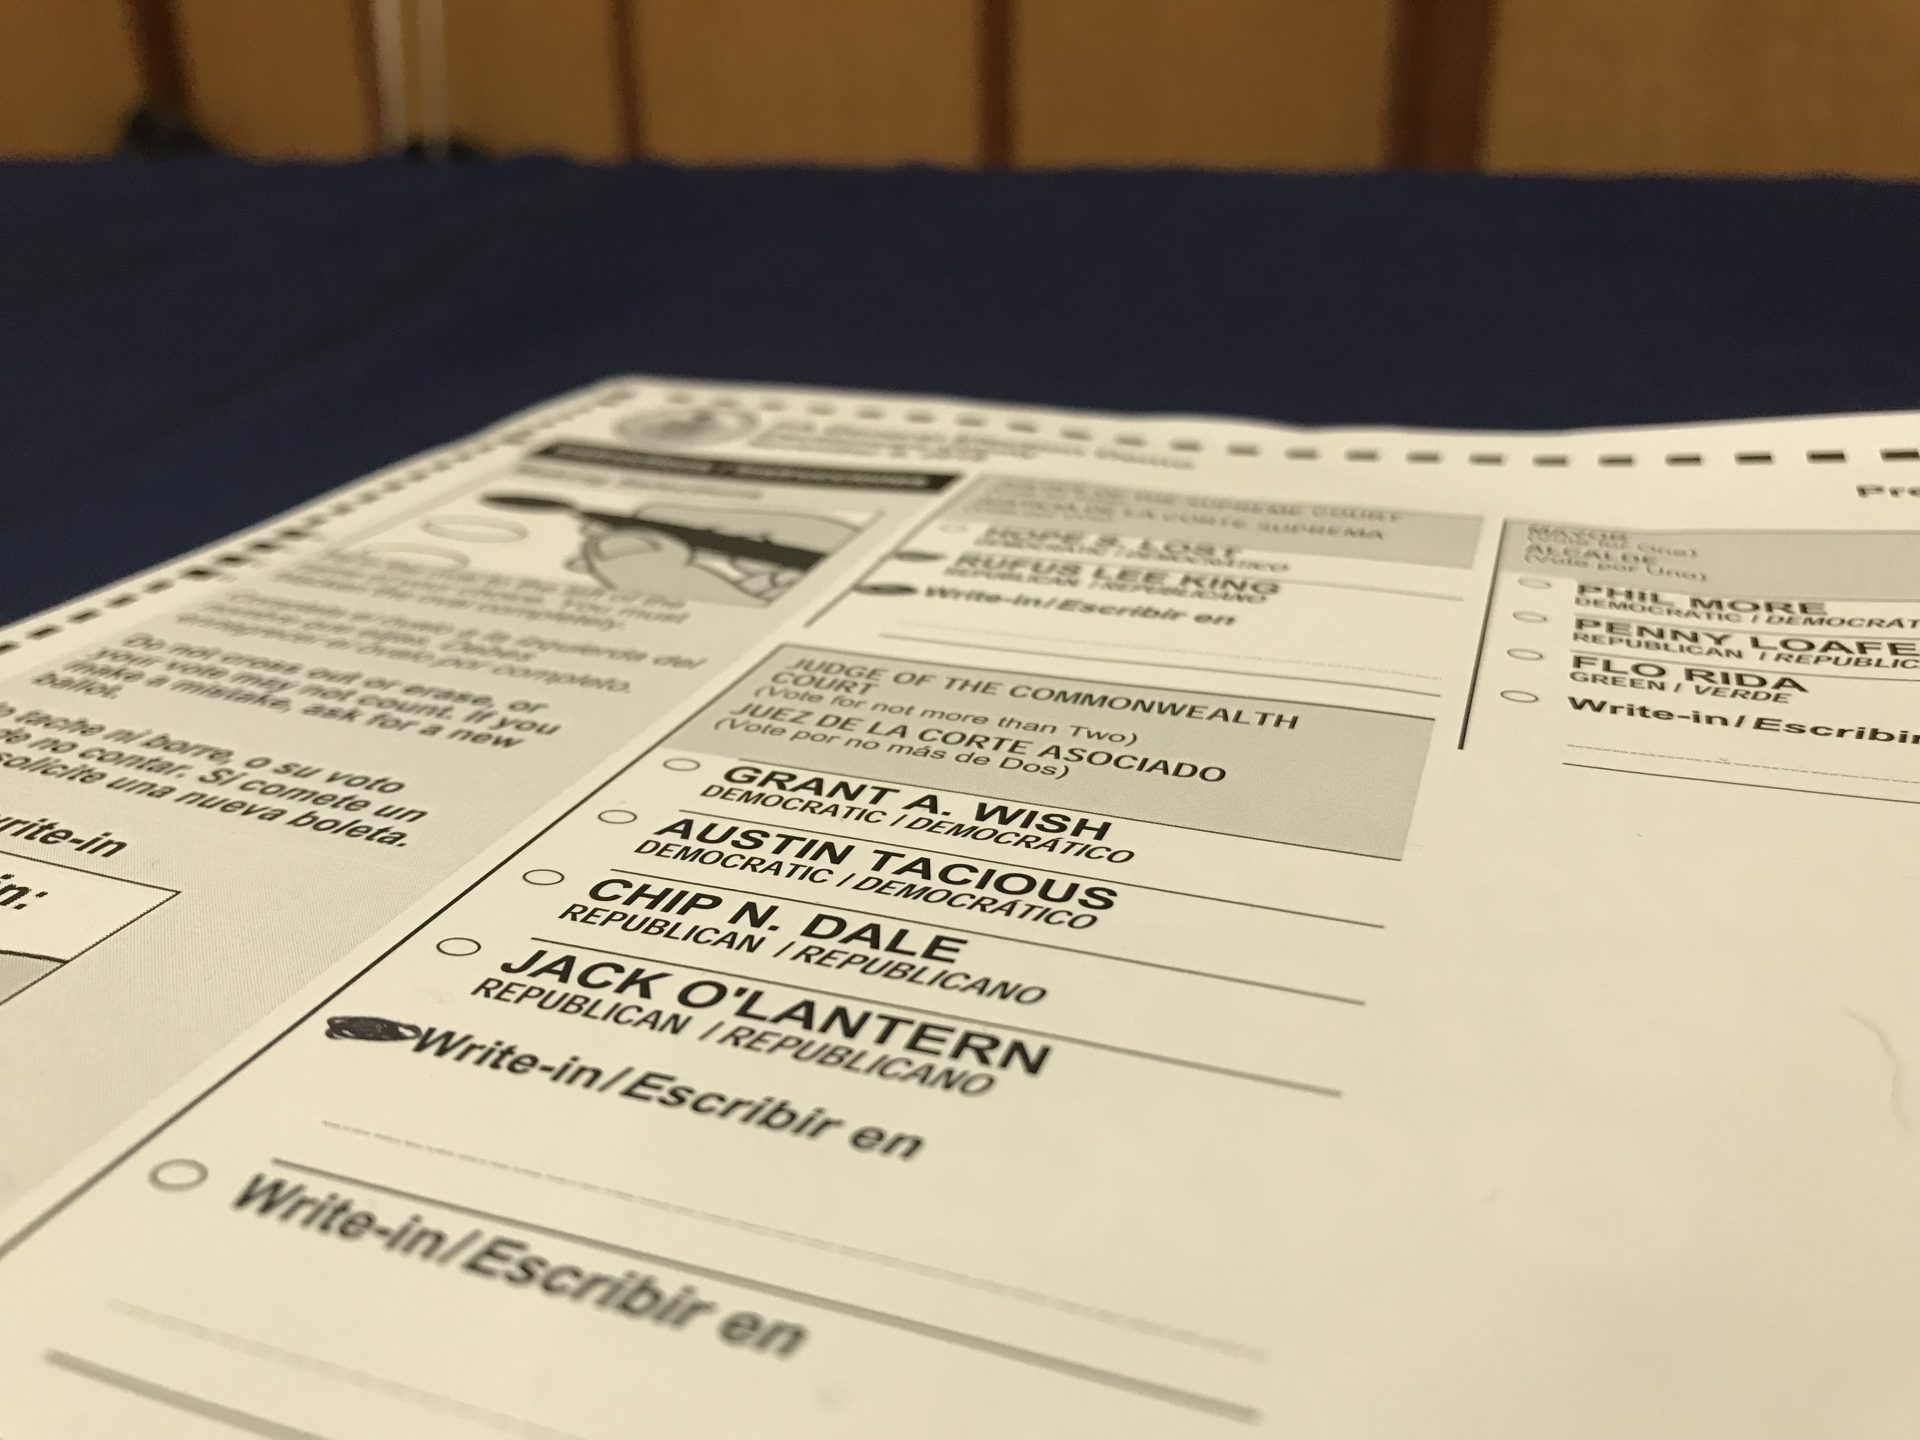 Pa. is spending millions on election security, but the effort has its critics